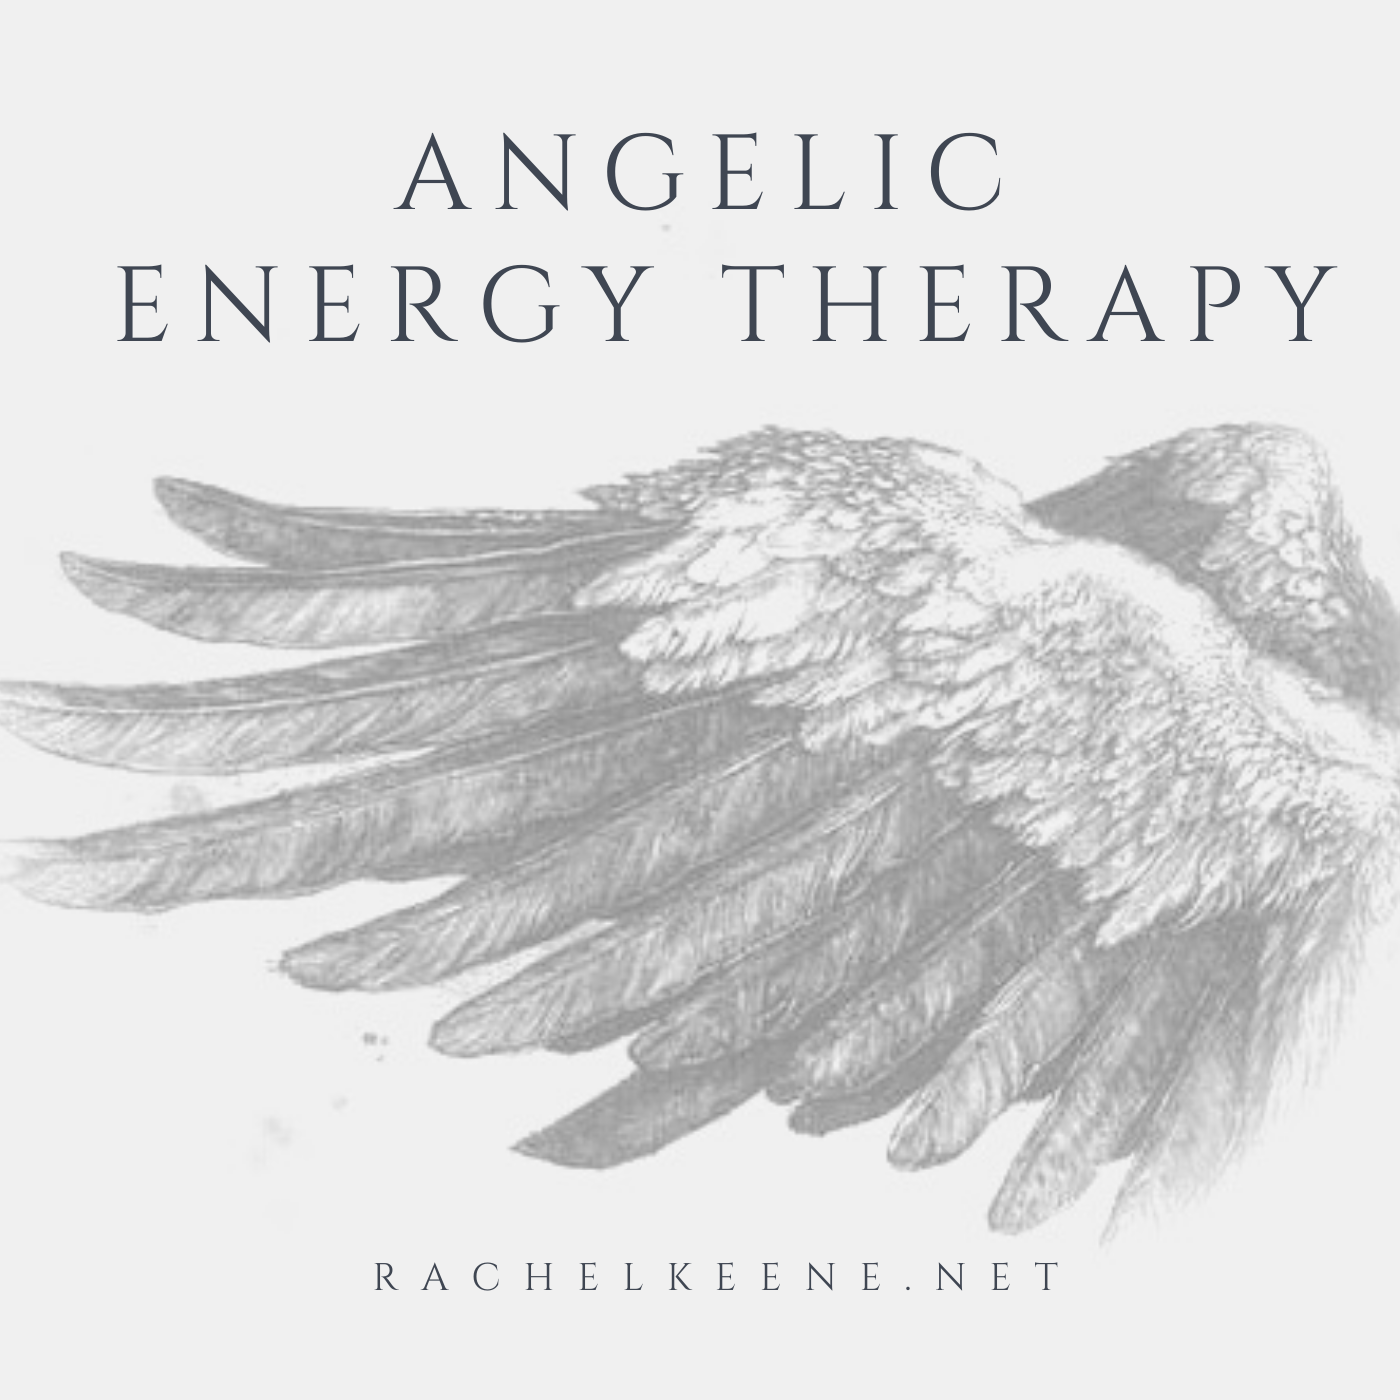 Angelic Energy Therapy with Rachel Keene